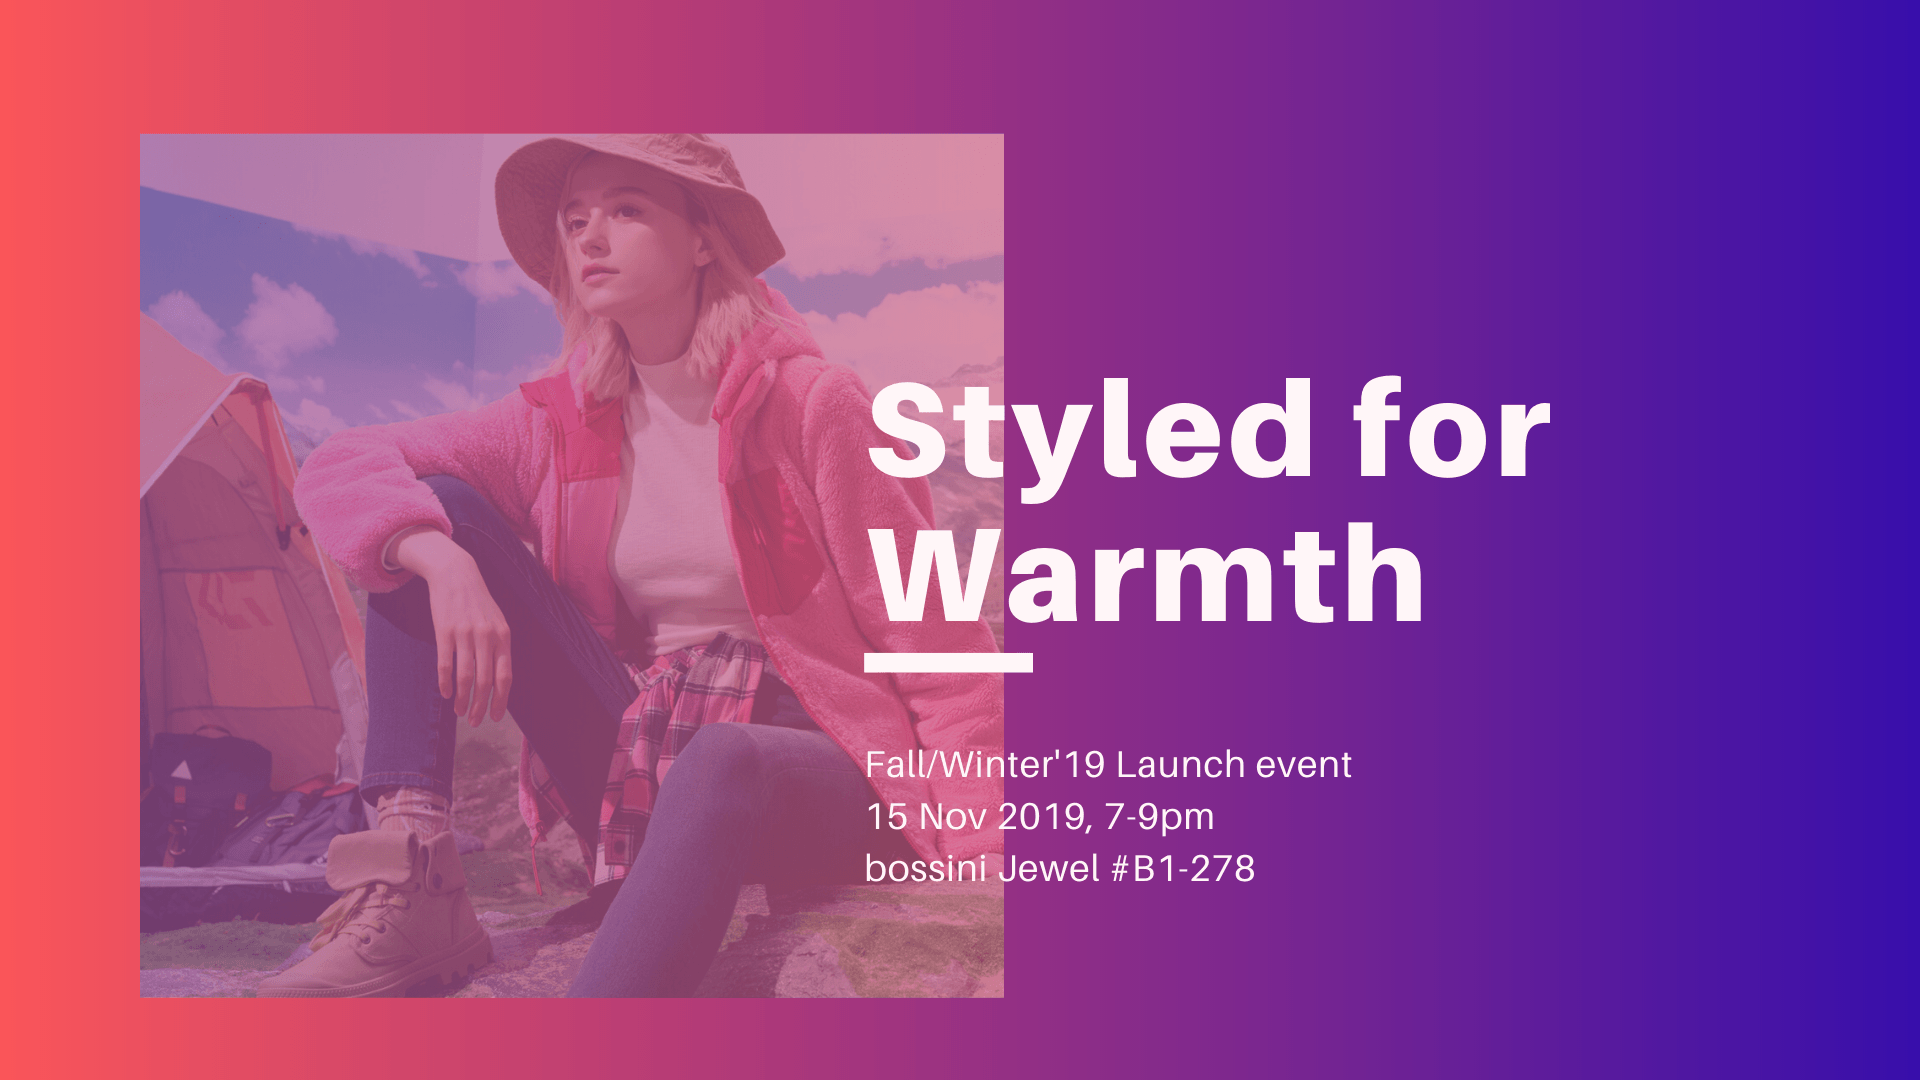 [WEBSITE] Styled for Warmth @ bossini Jewel